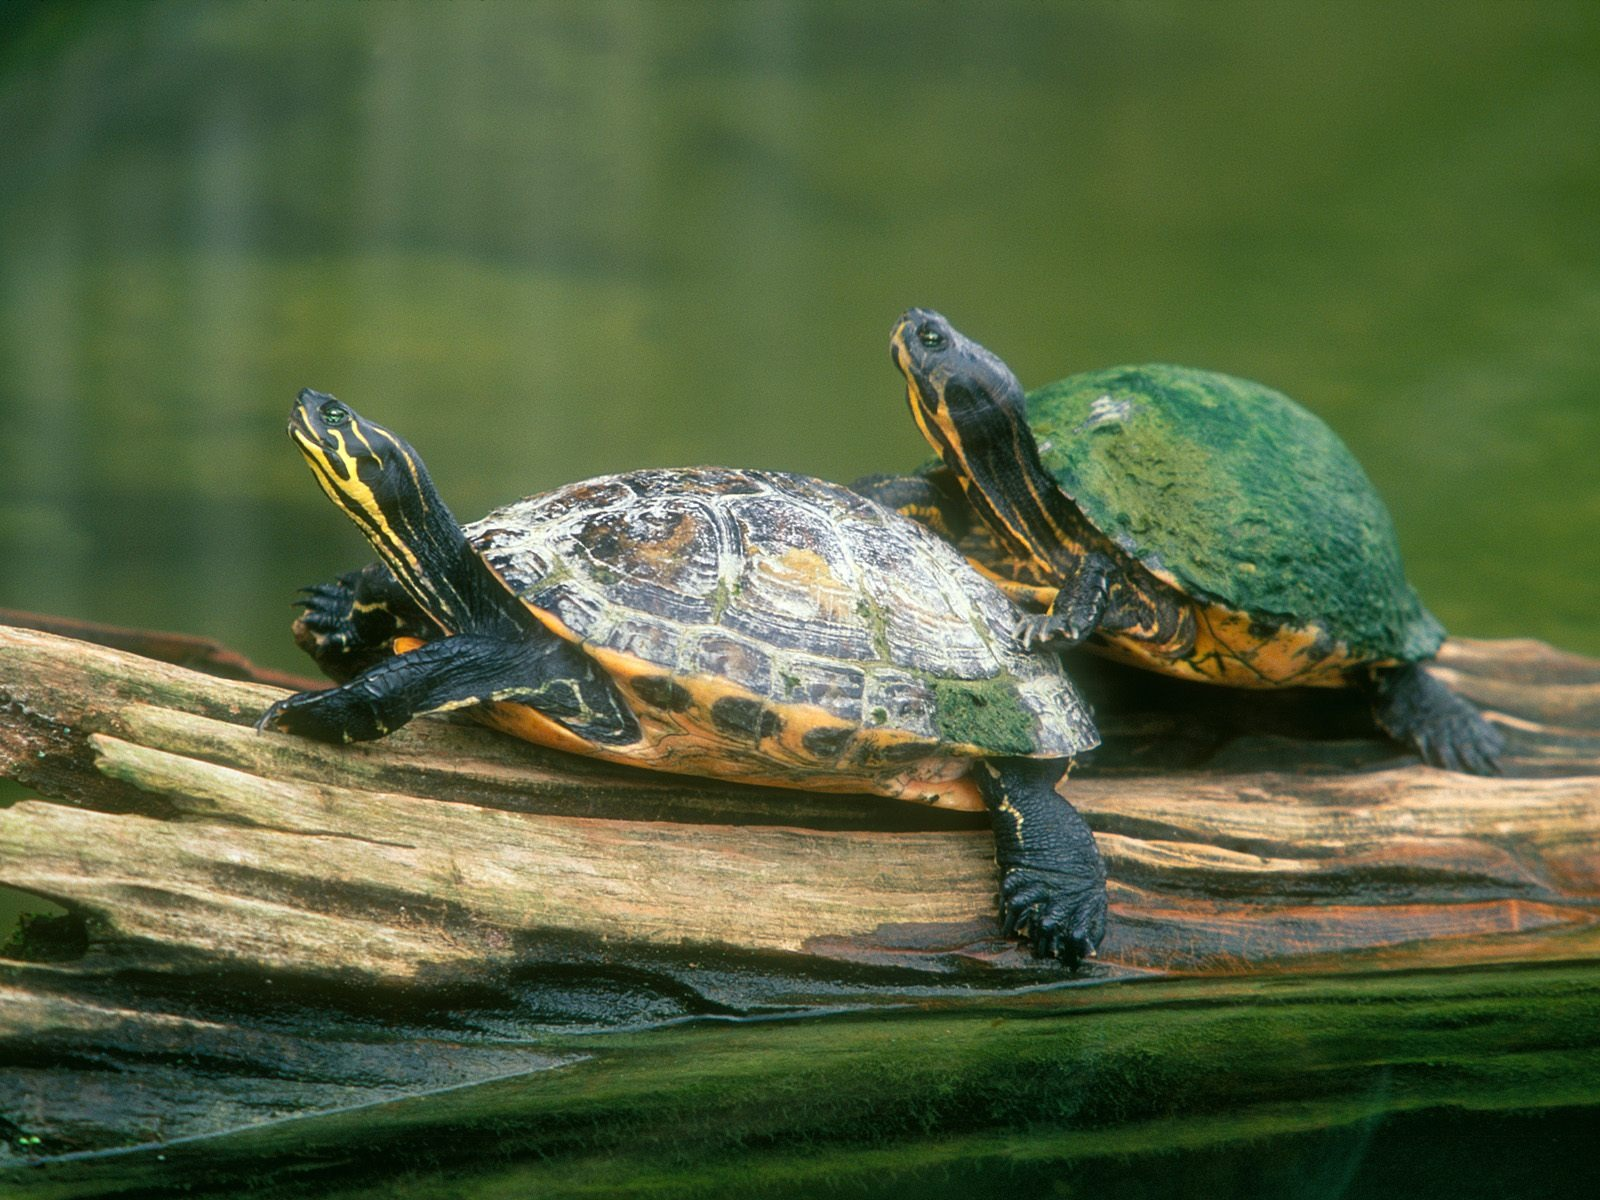 Log Jumping Peninsula Cooter Turtles Wallpaper Turtles Animals Wallpapers